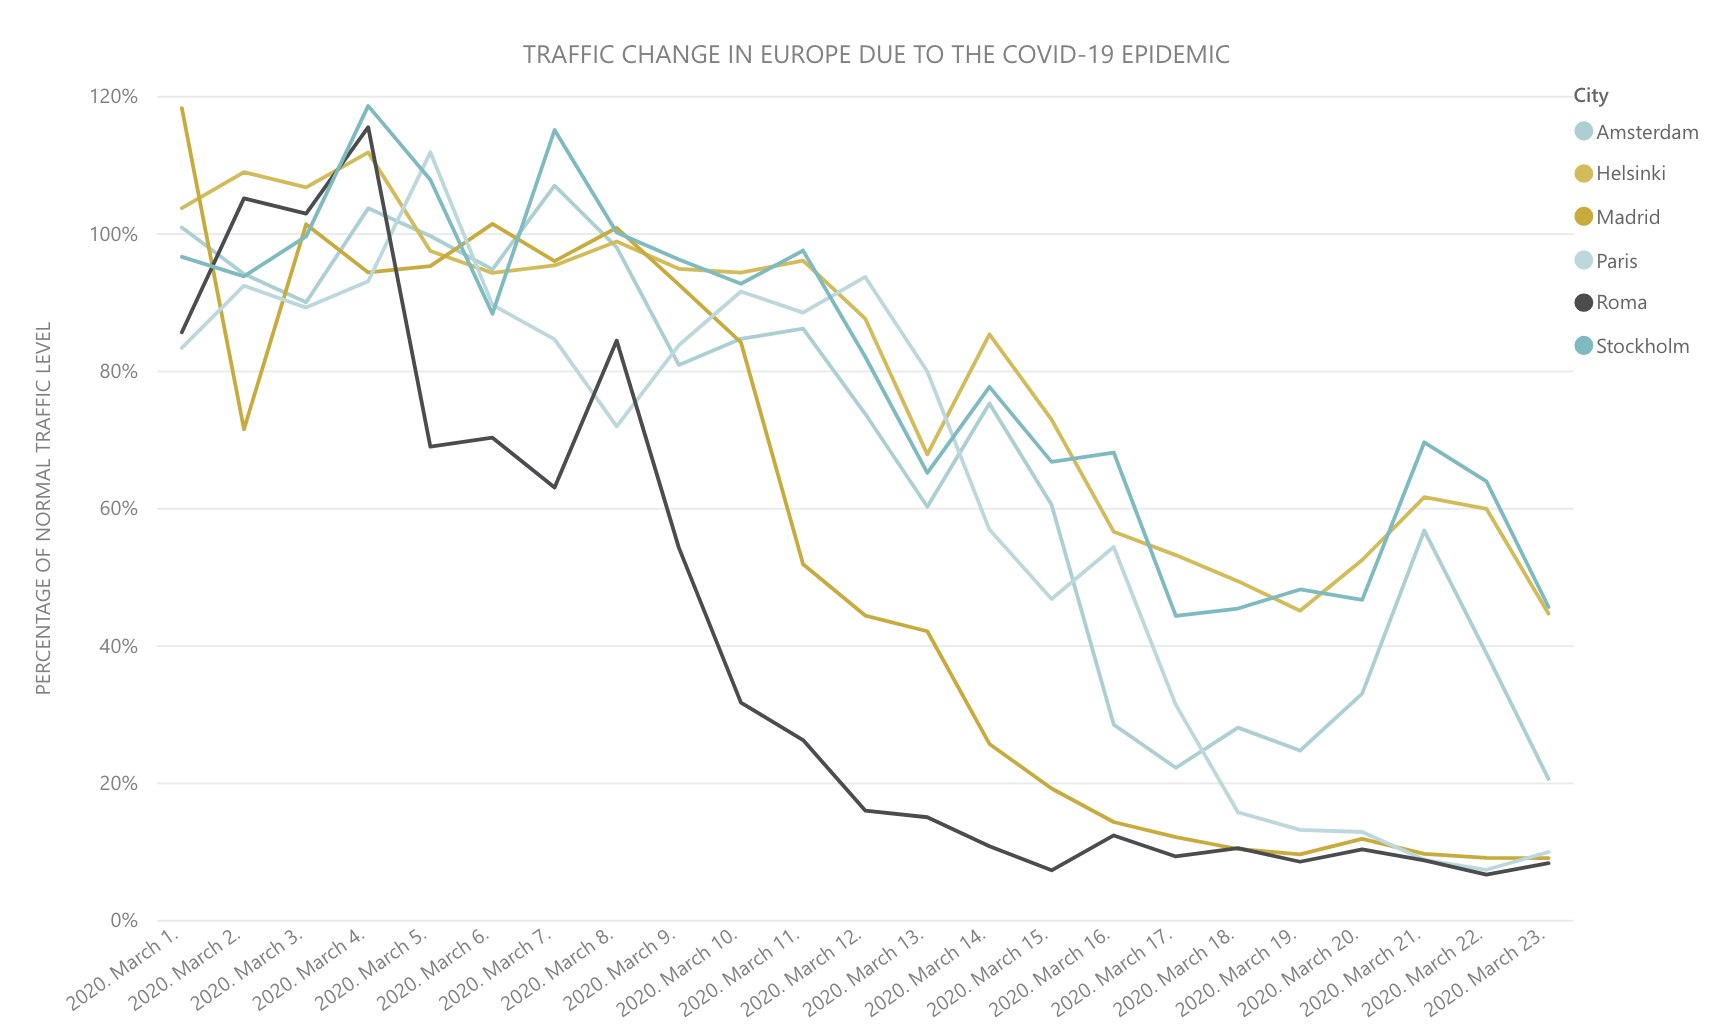 traffic_change_in_europe_due_to_the_covid-19_epidemic.png